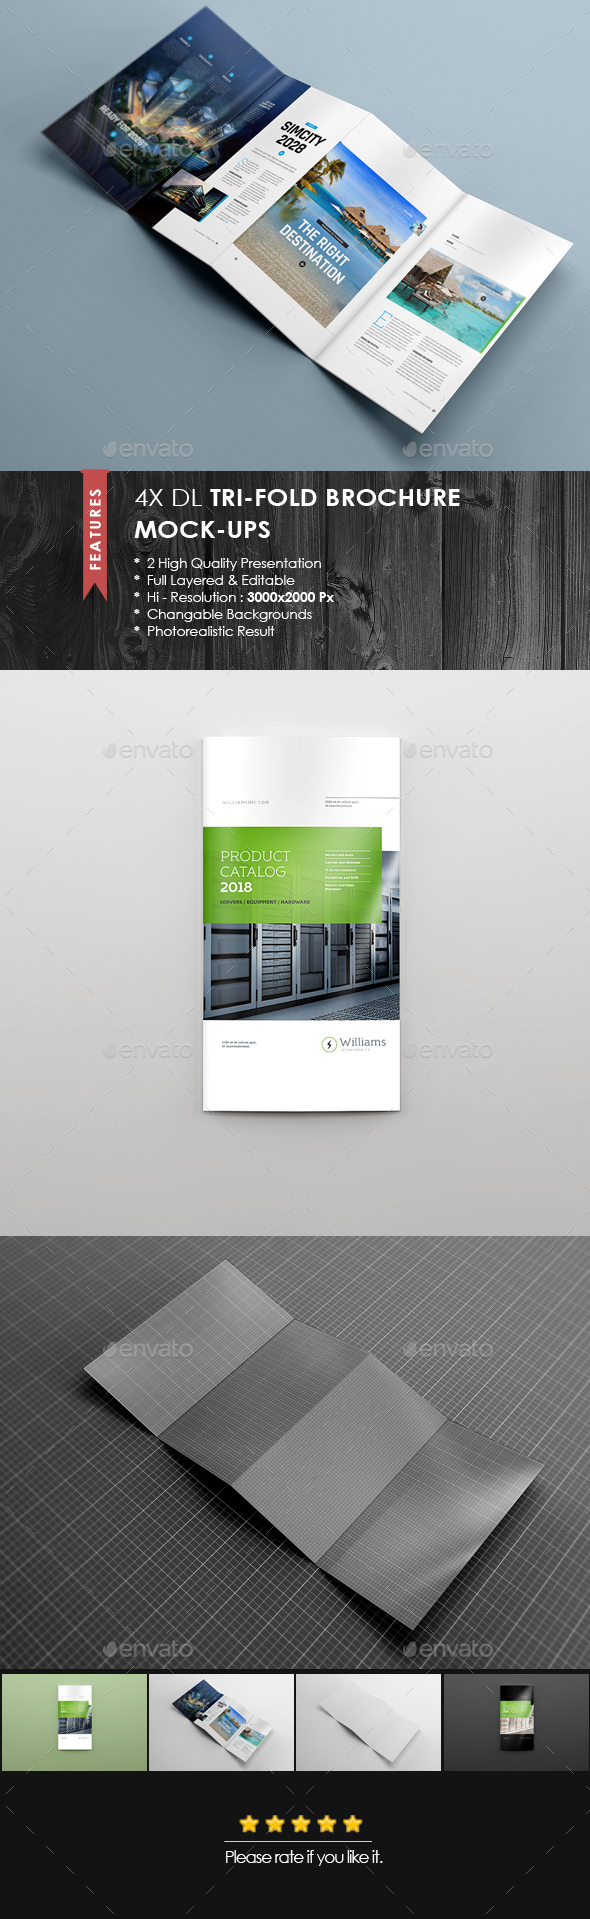 4xdl double gate fold brochure mock up 5 by 89pixel for Double gate fold brochure template